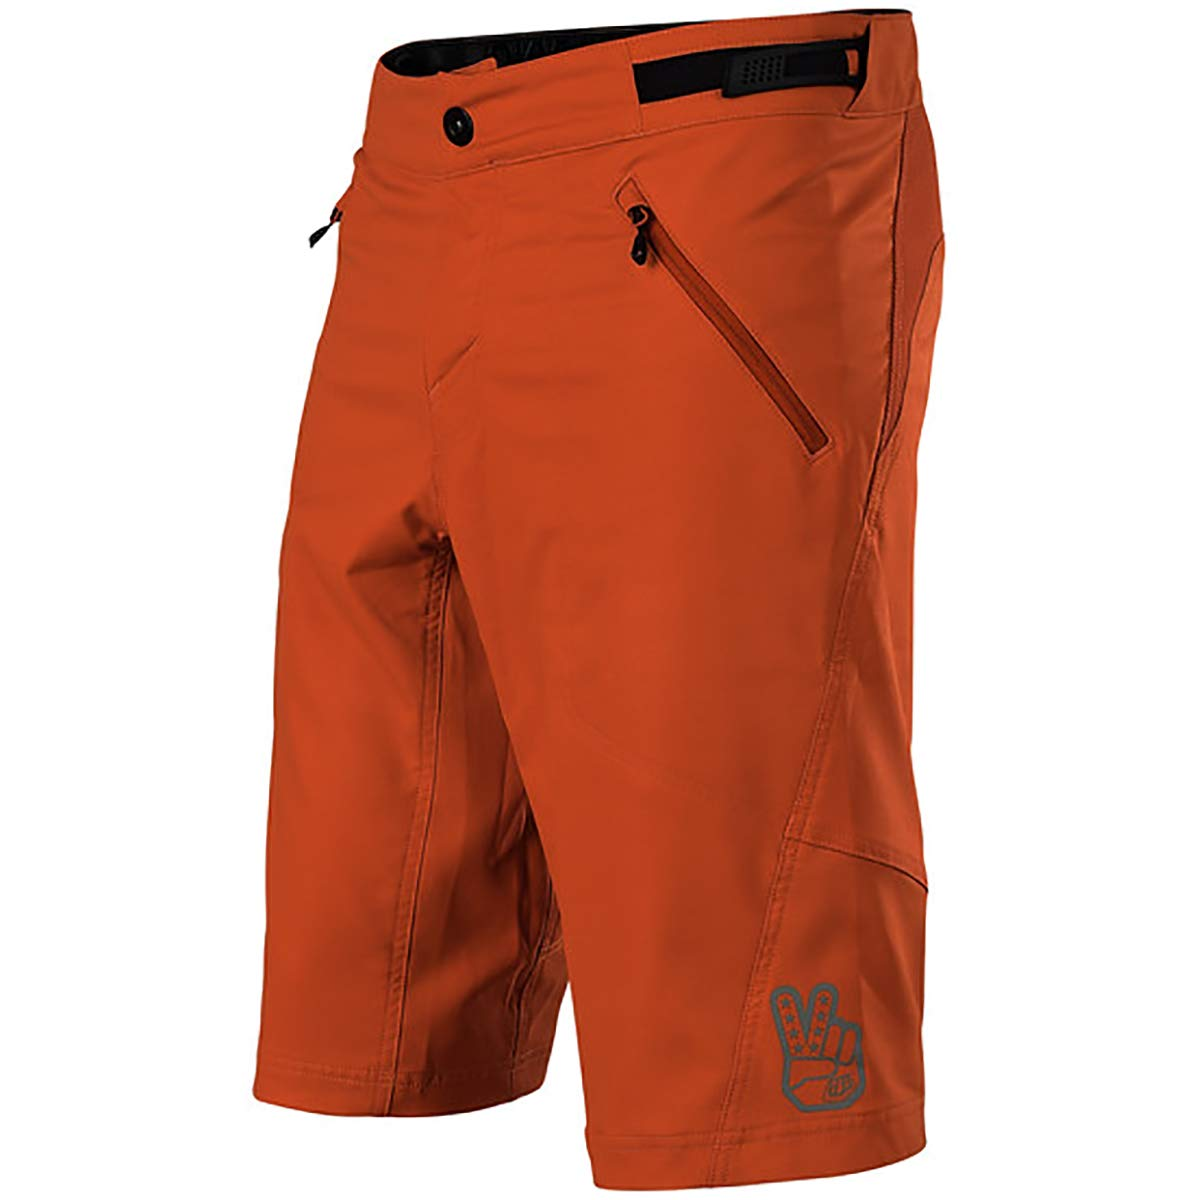 Troy Lee Designs Skyline Short Shell - Men's Solid Clay, 38 by Troy Lee Designs